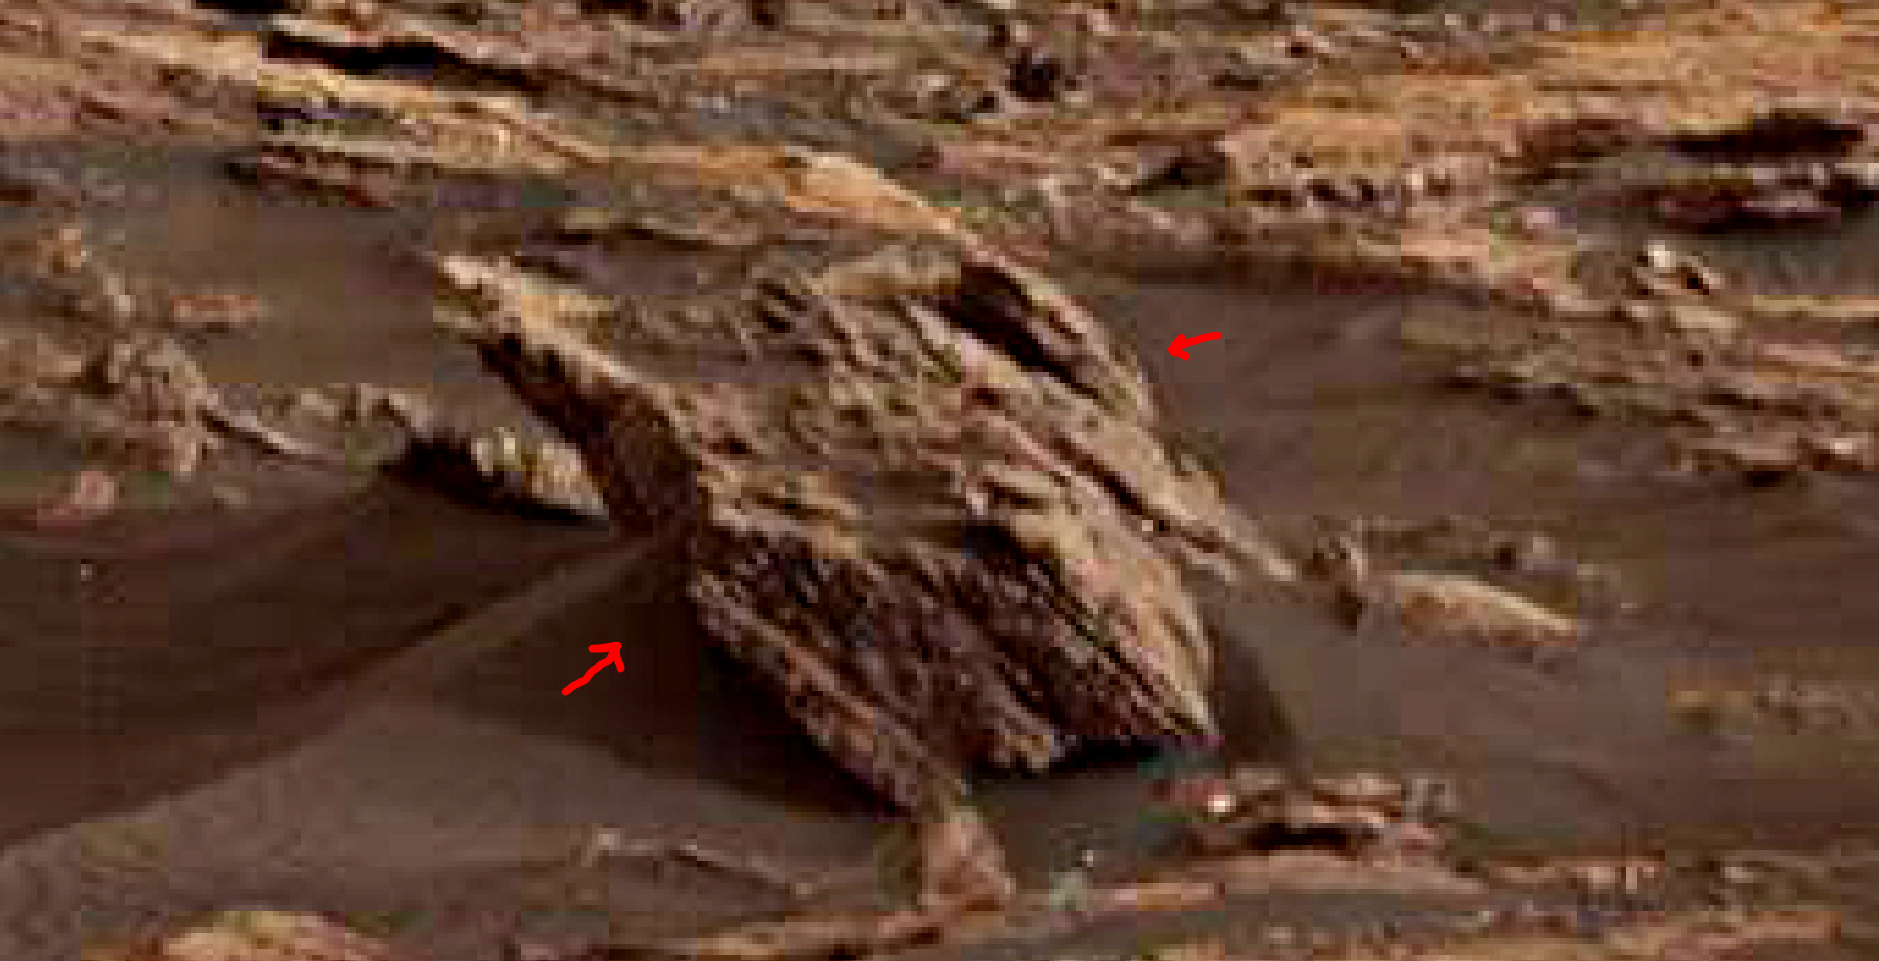 mars-sol-1508-anomaly-artifacts-2-was-life-on-mars